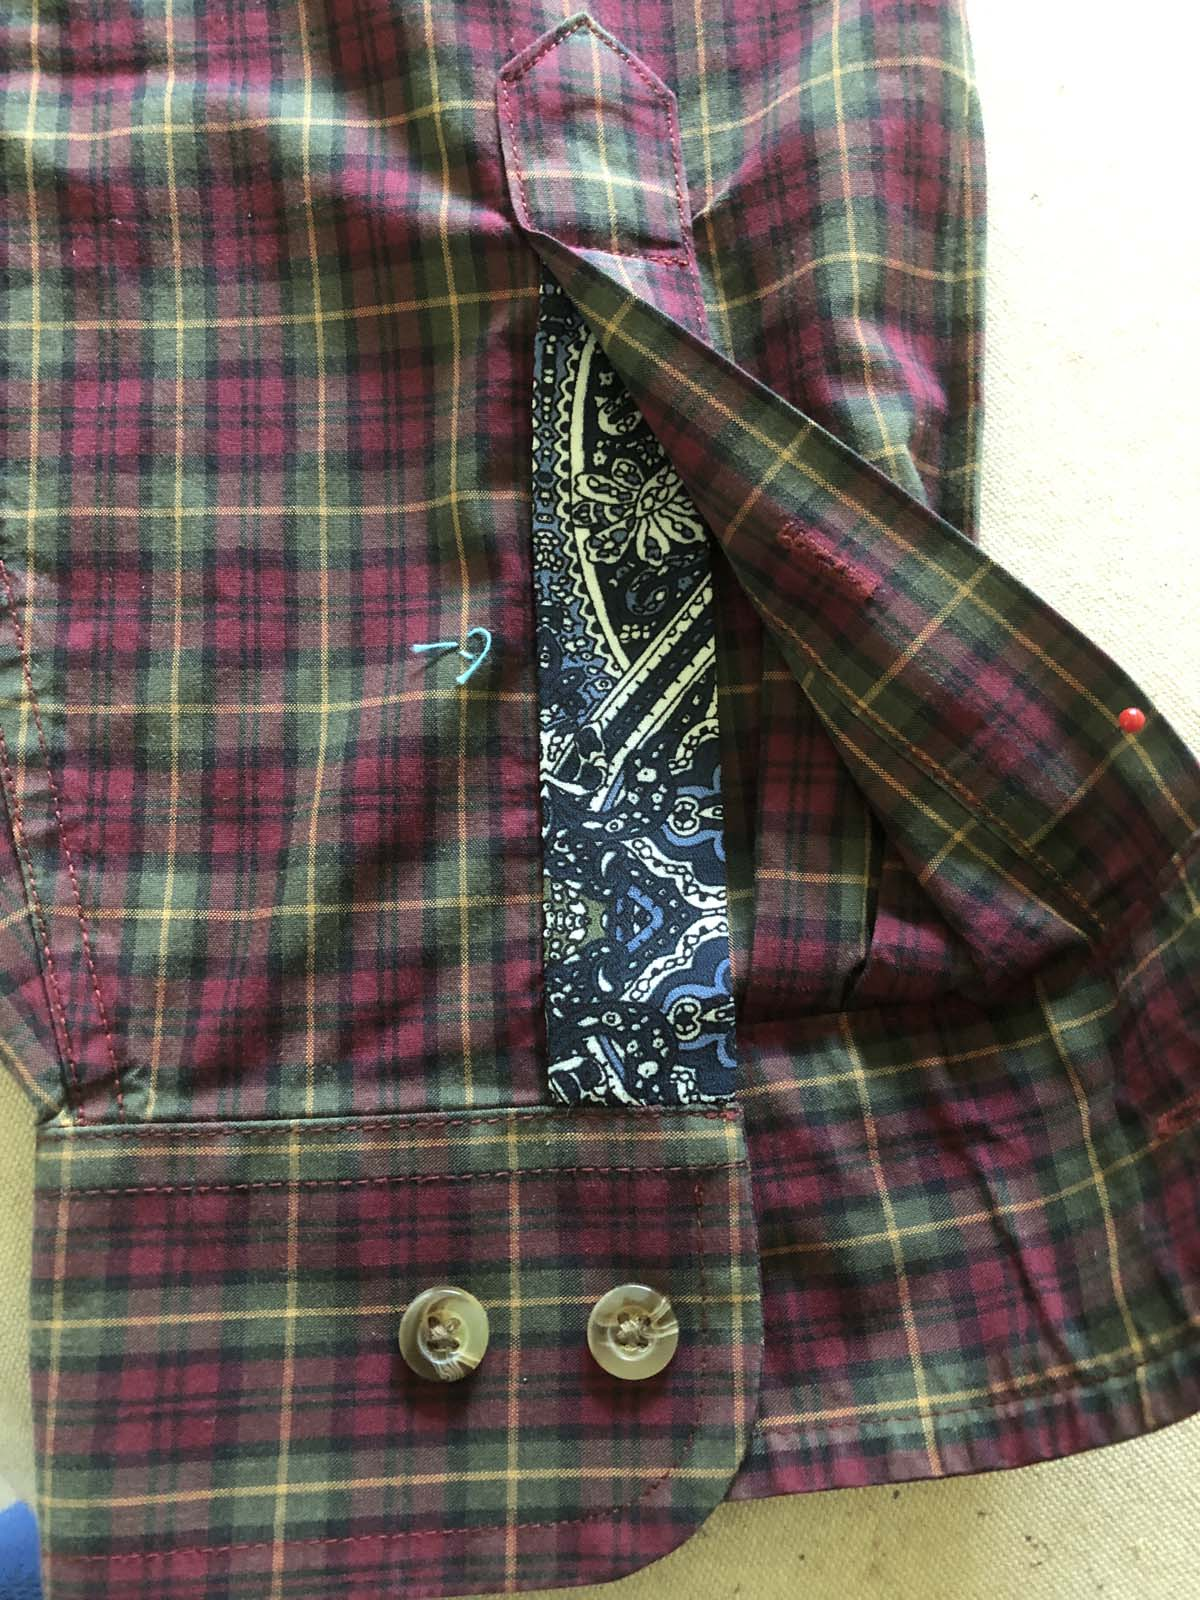 Appliqued right sleeve placket on red plaid shirt